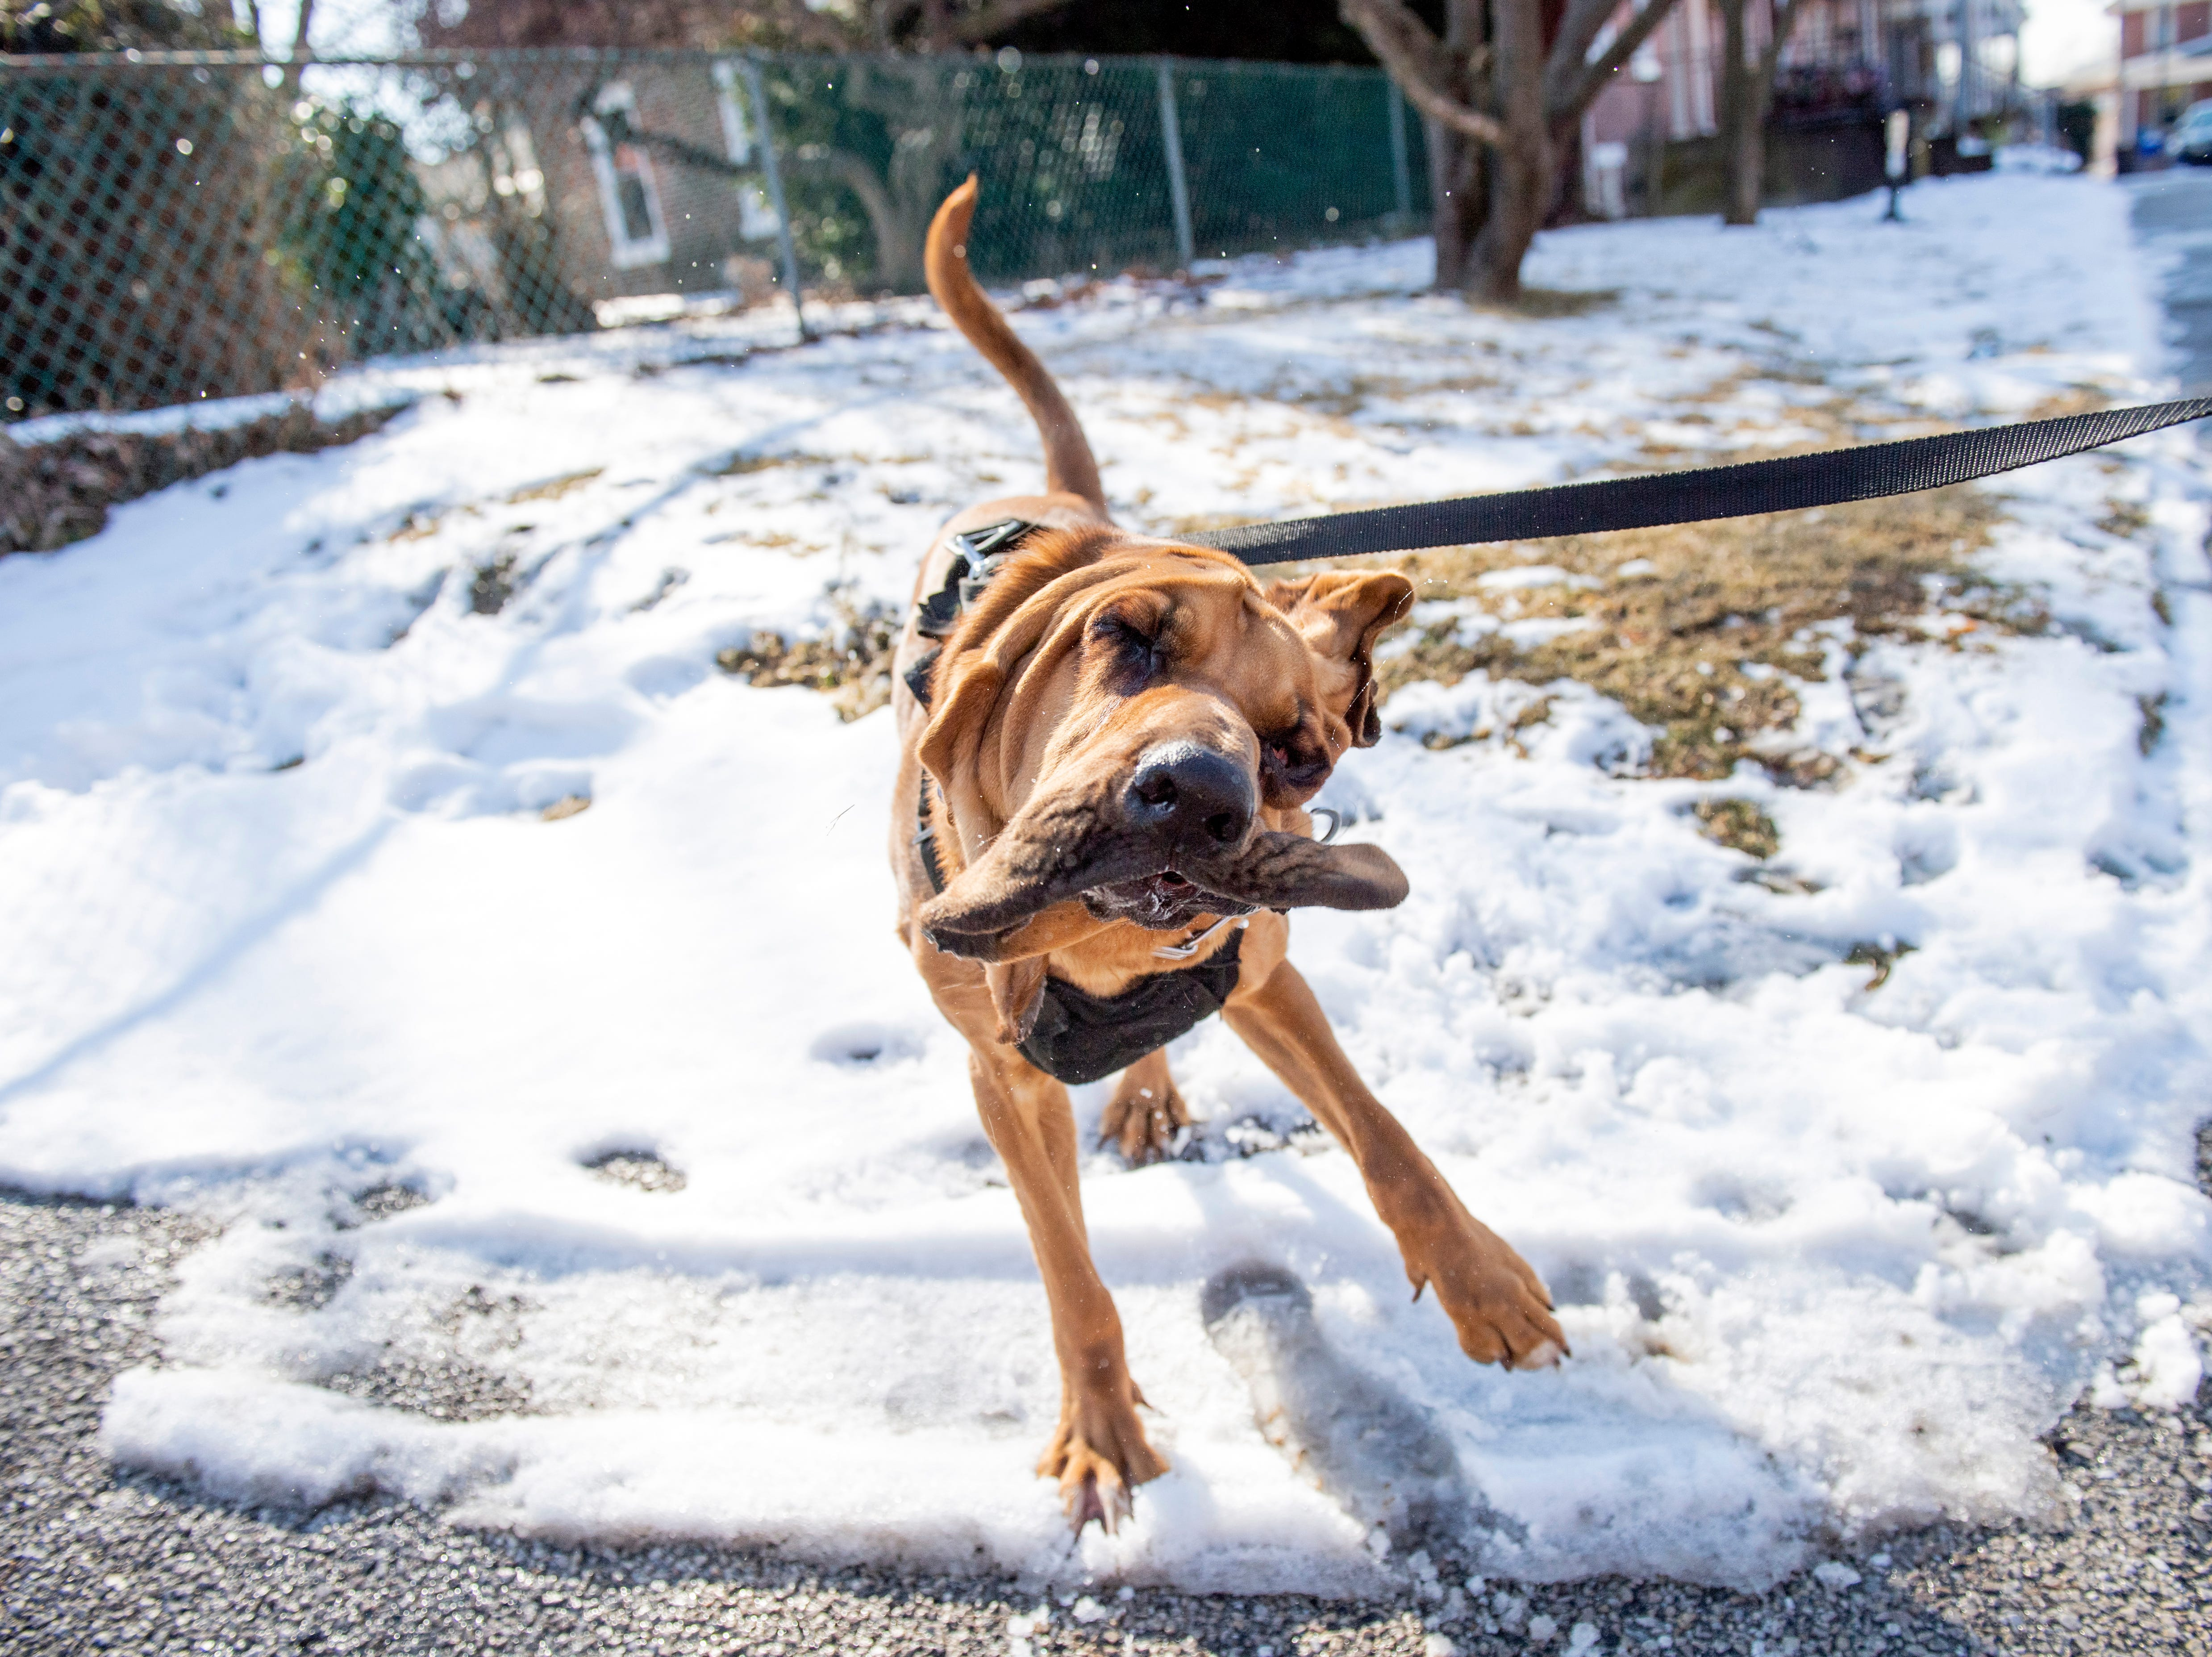 Detective Prince shakes around after completing a demonstration on Monday, Feb. 4, 2019. West York Borough's Detective Prince - who just turned 2-years old - has helped county law enforcement in 30 cases over the past year.